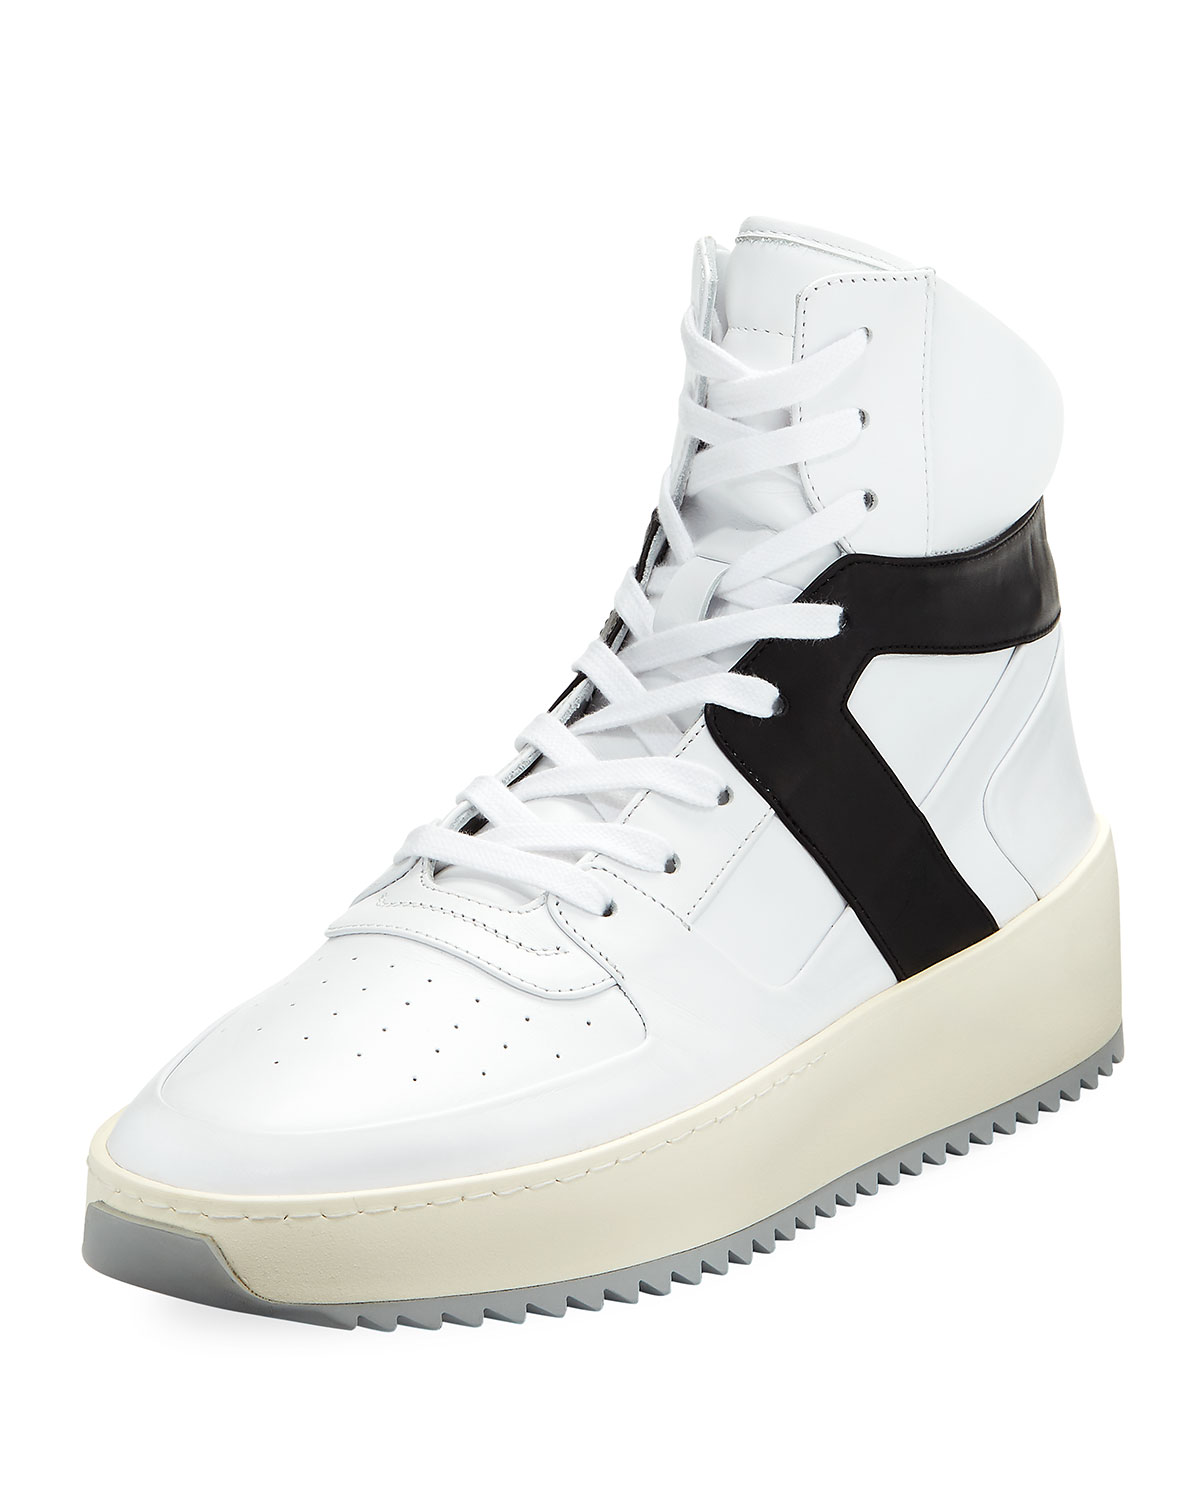 Fear of God Men's Basketball Sneakers Leather High-Top Sneakers Basketball 13ae1f